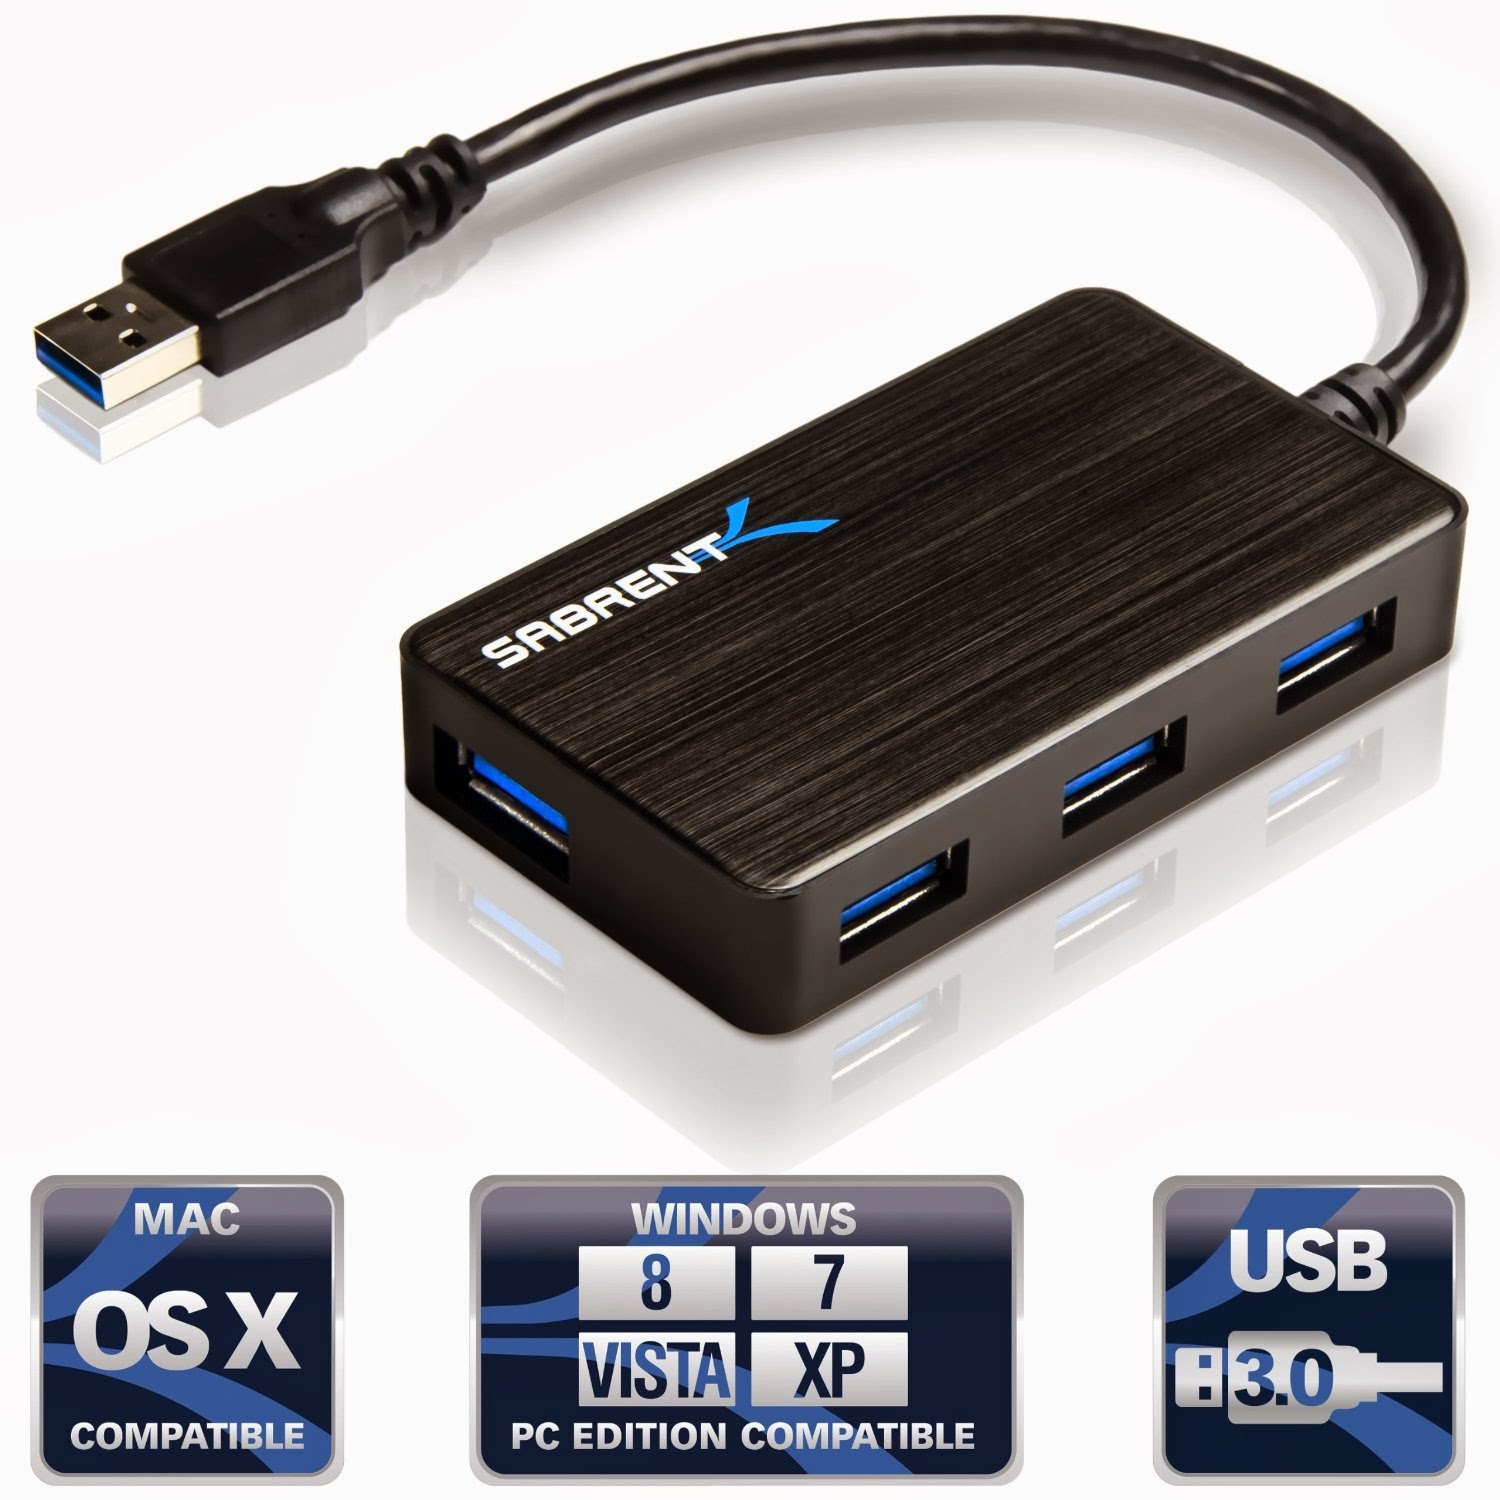 Review Daily: Review Sabrent 4 Port Portable USB 3.0 Hub